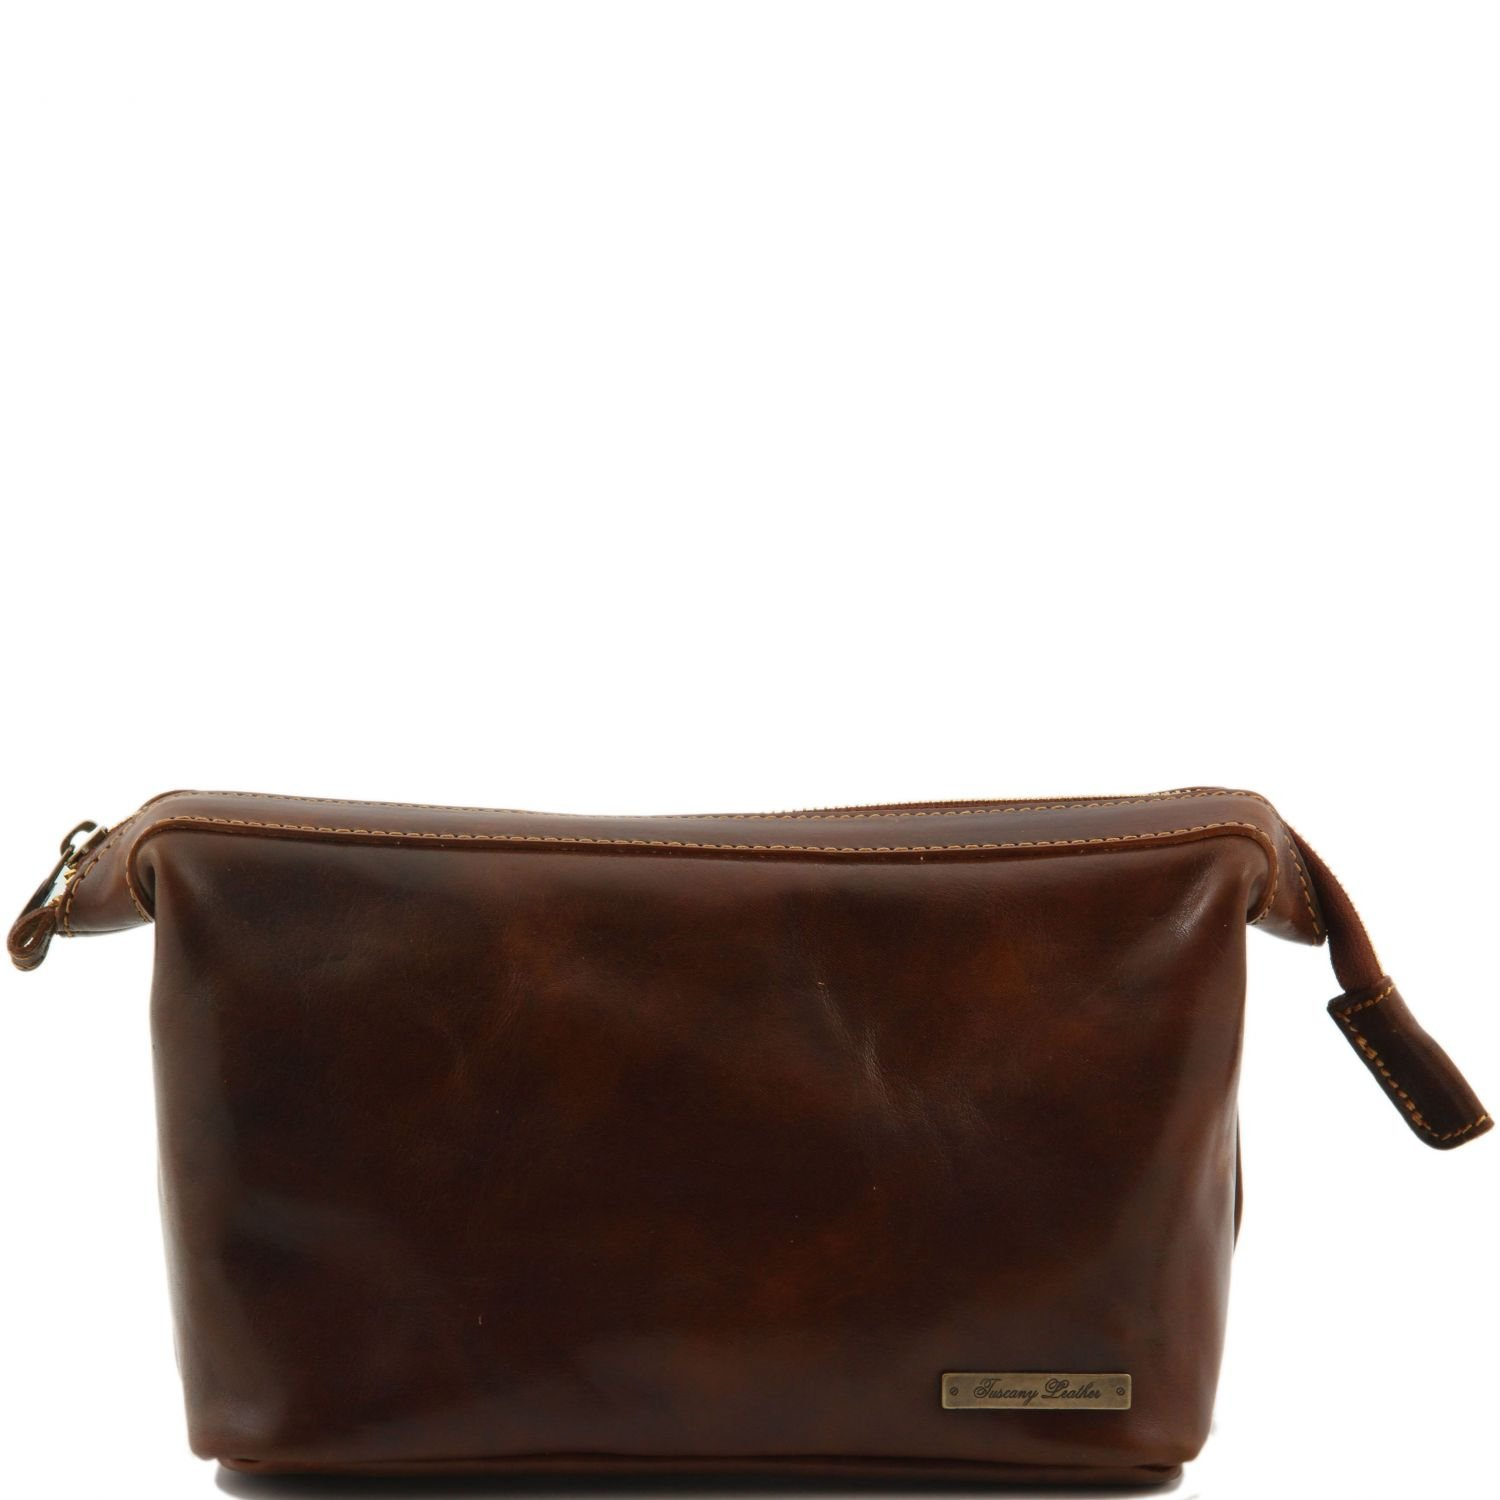 Tuscany Leather Ronny - Leather Beauty Case by Tuscany Leather